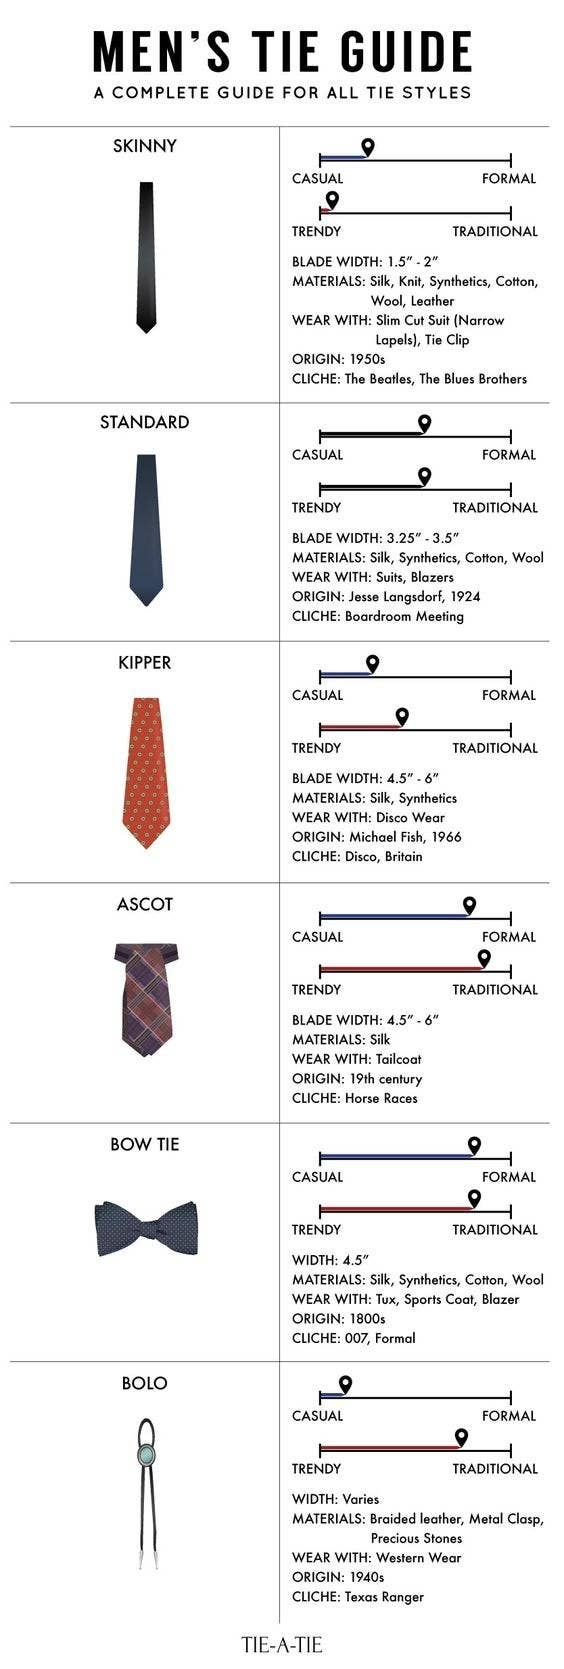 And How To Pick The Proper Tie For The Occasion